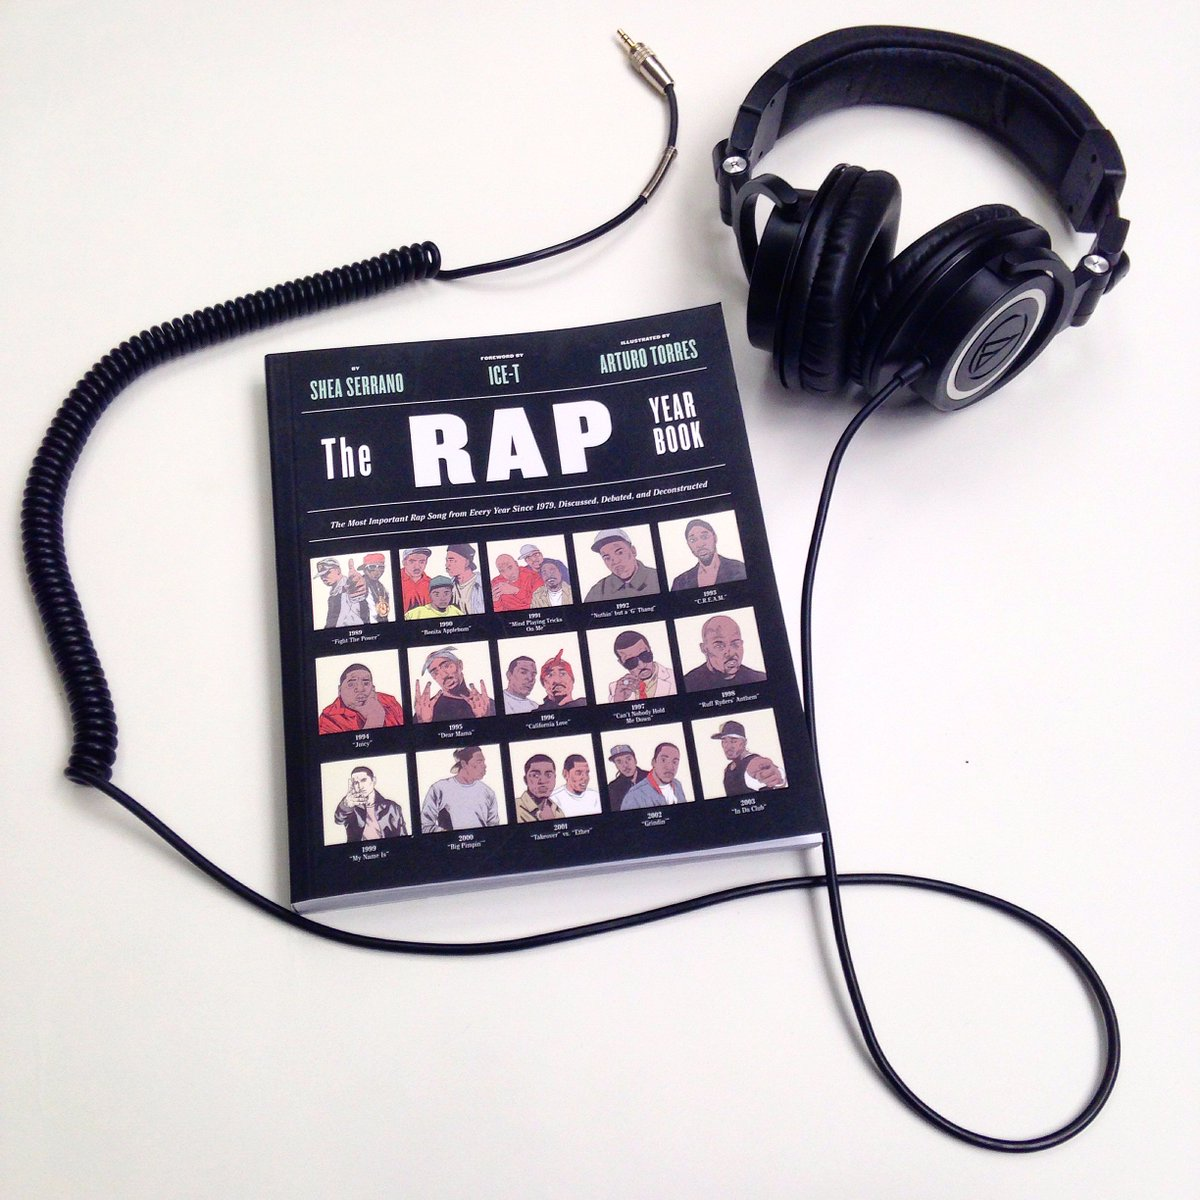 Congratulations to our brand new @nytimes bestselling author @SheaSerrano! #RapYearBook https://t.co/1hS9jbcZnc